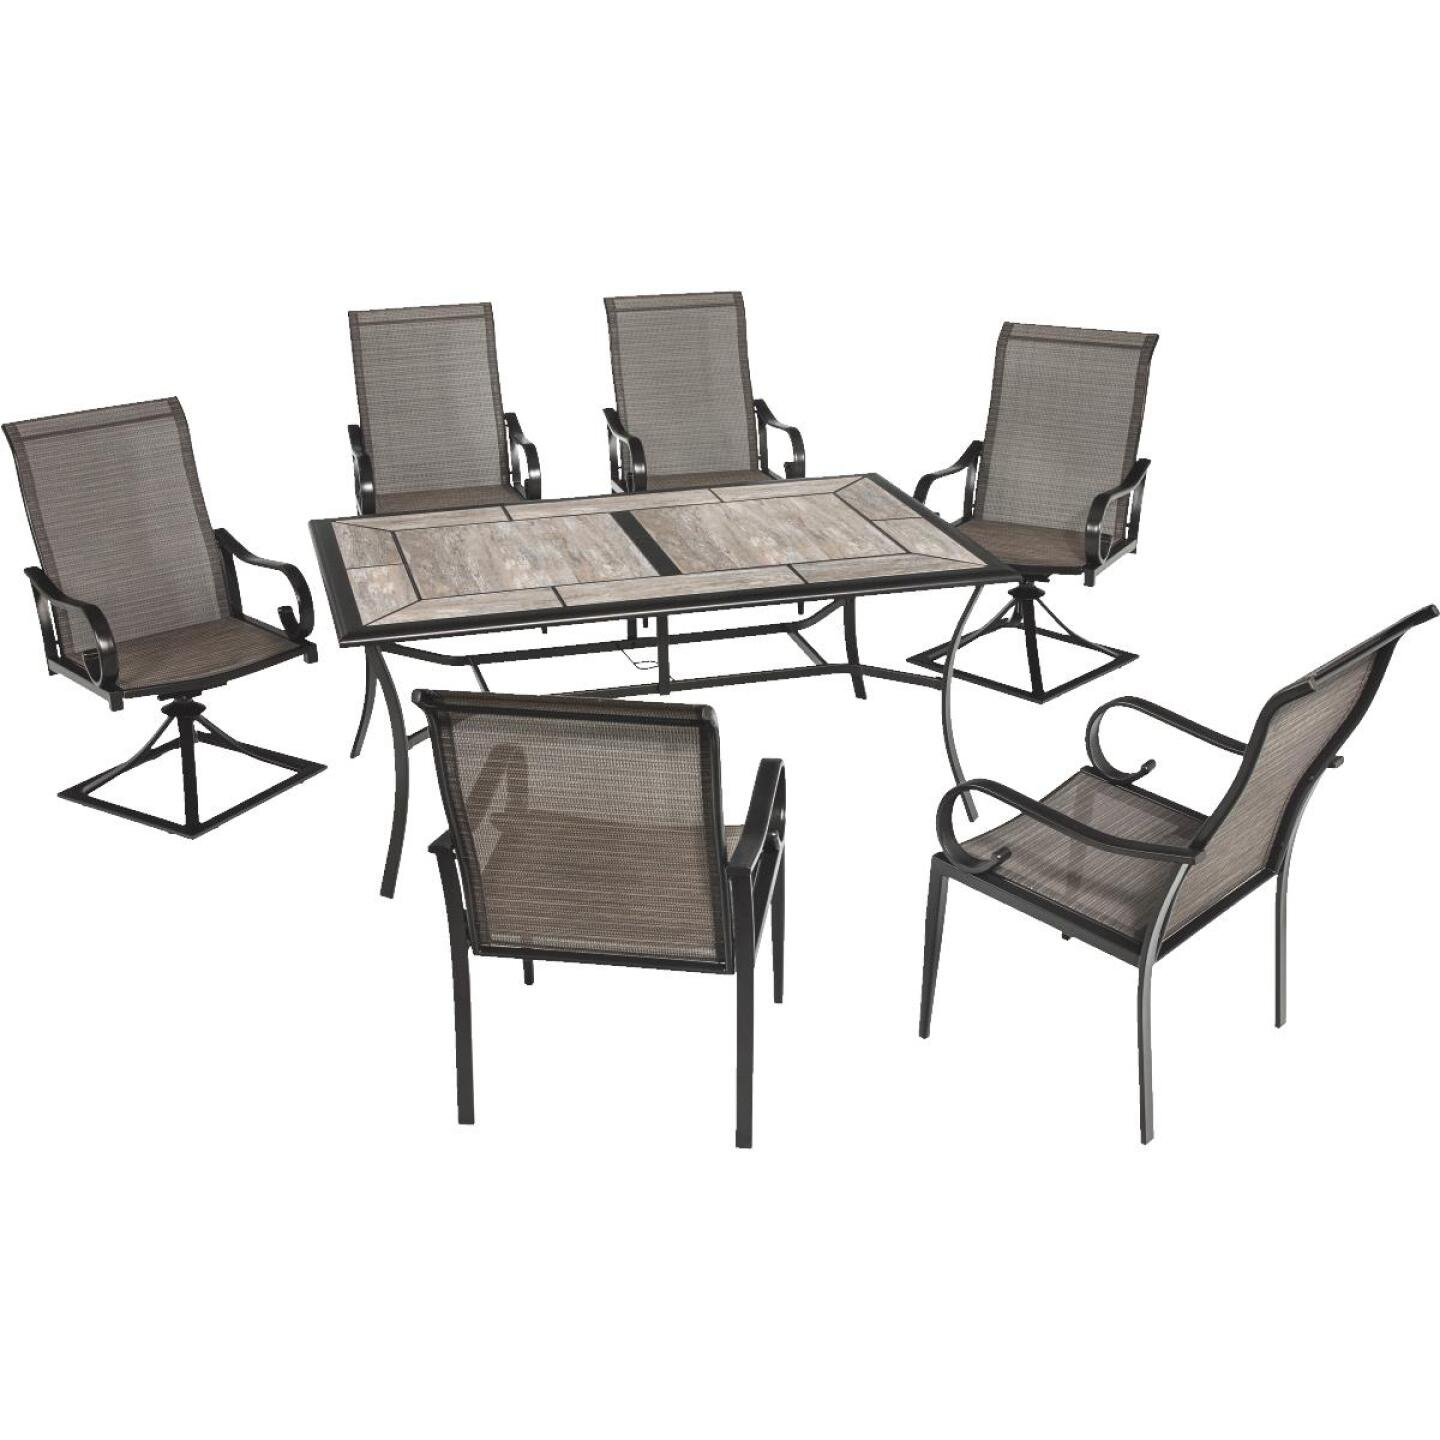 Outdoor Expressions Berkshire 7-Piece Dining Set Image 207